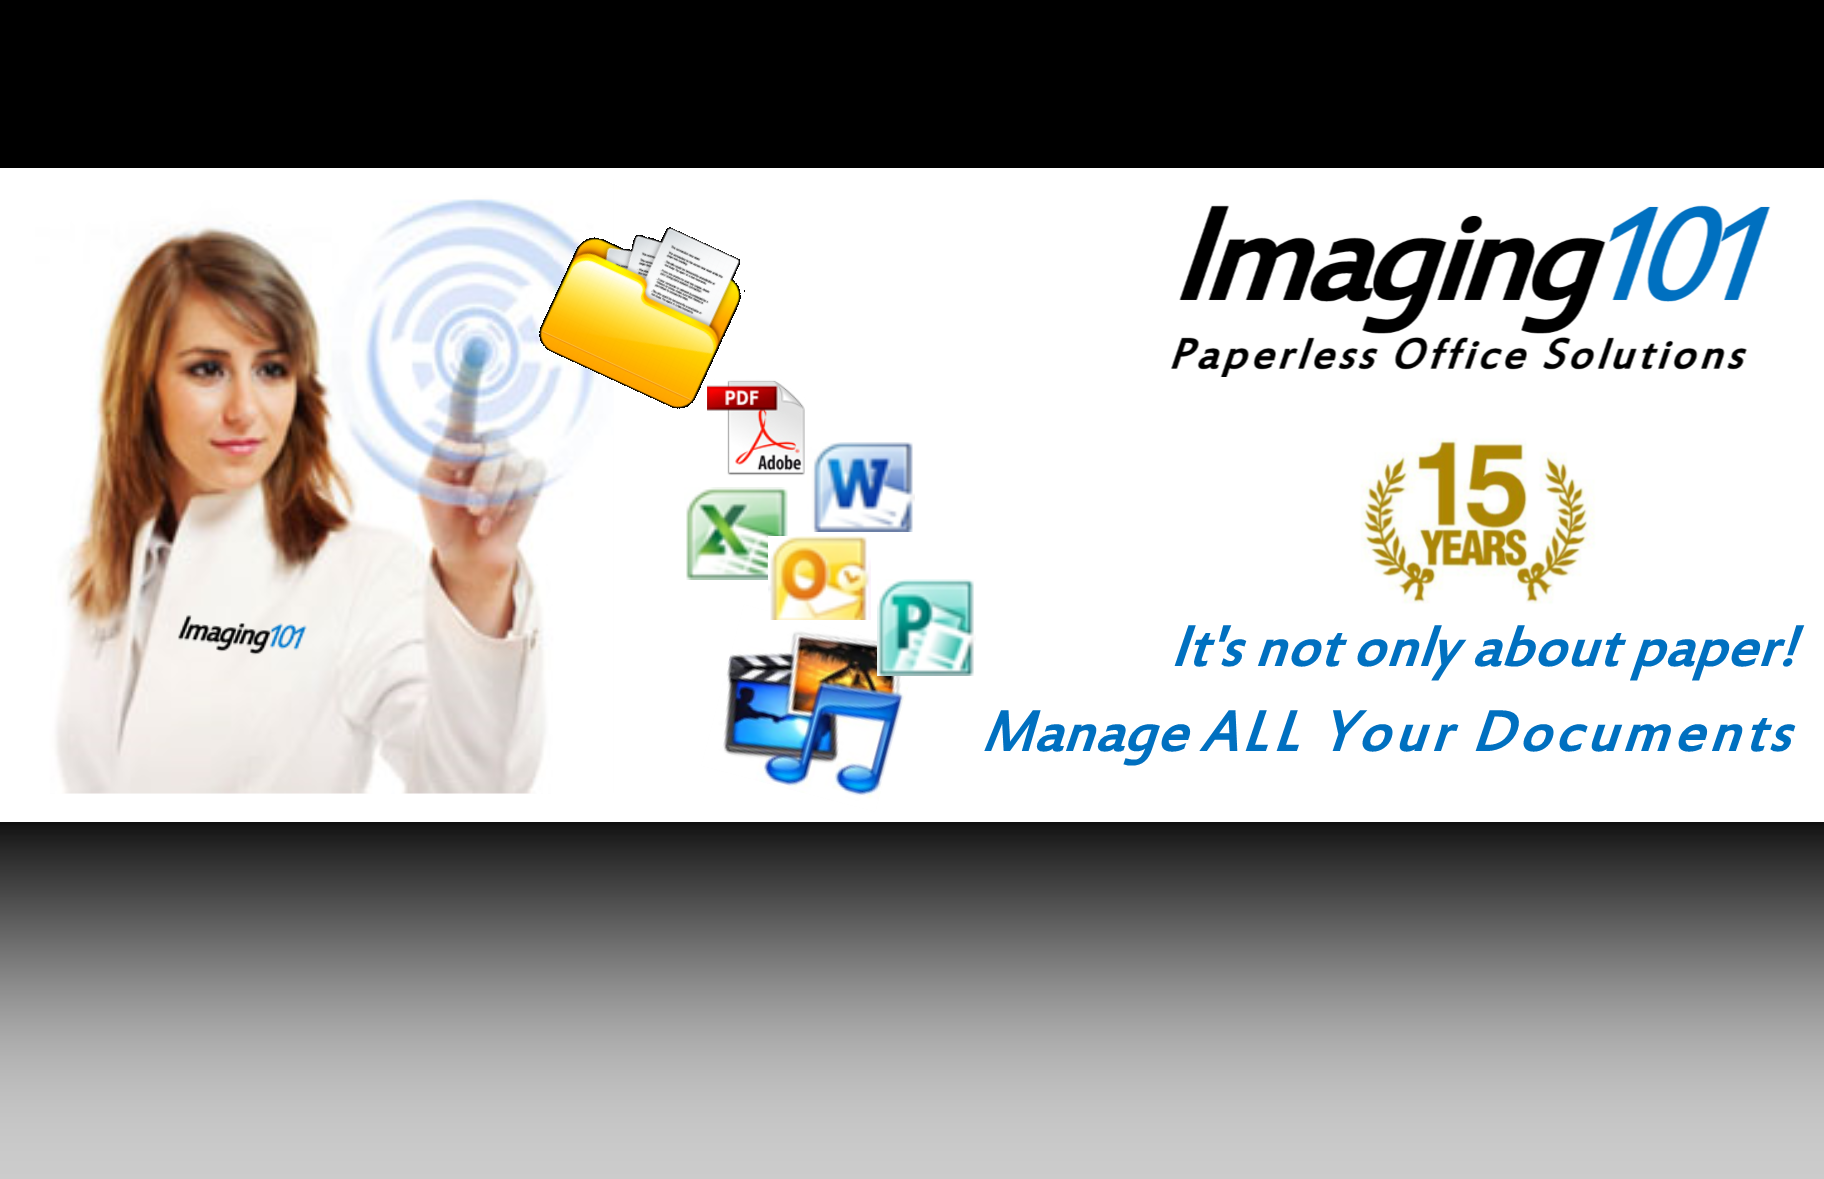 Imaging101 Document Management Header Image 1